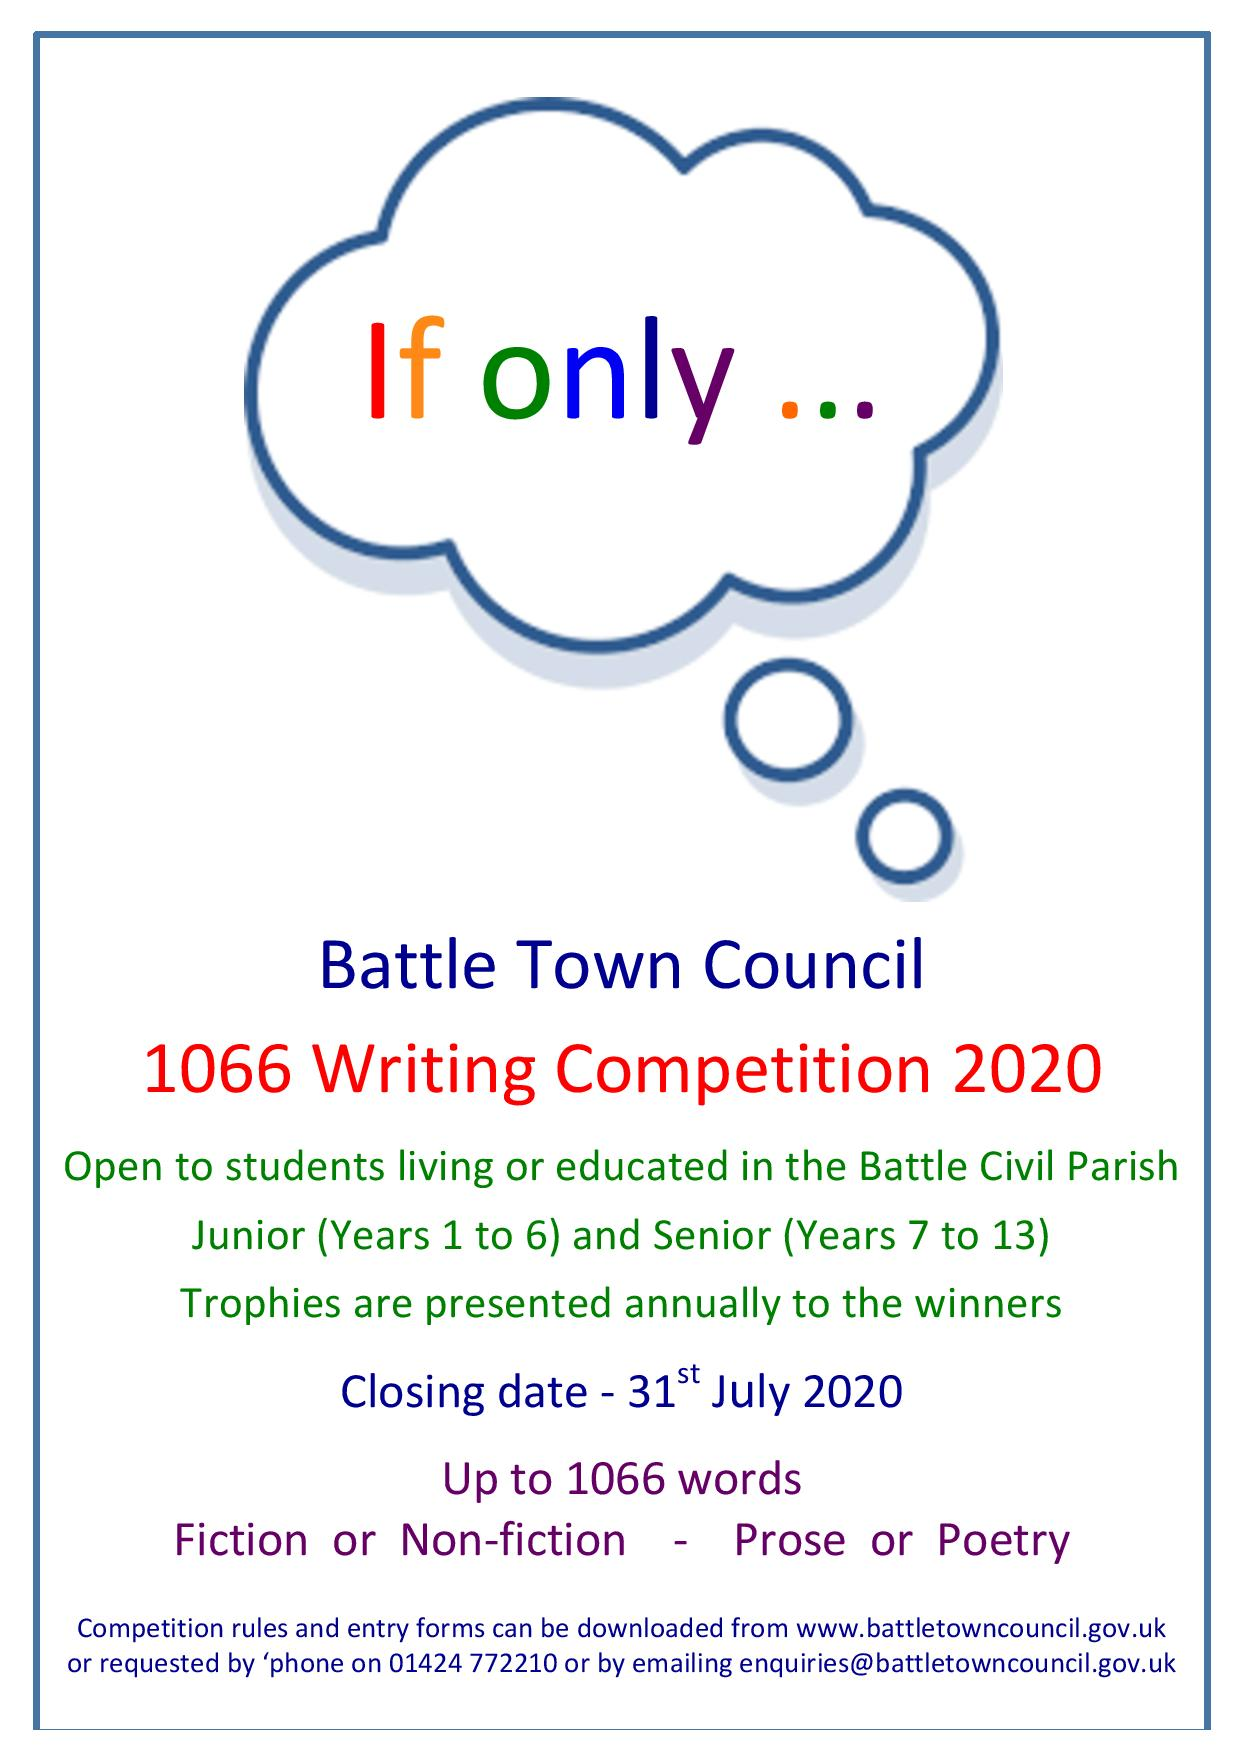 Battle Town Council Writing Competition